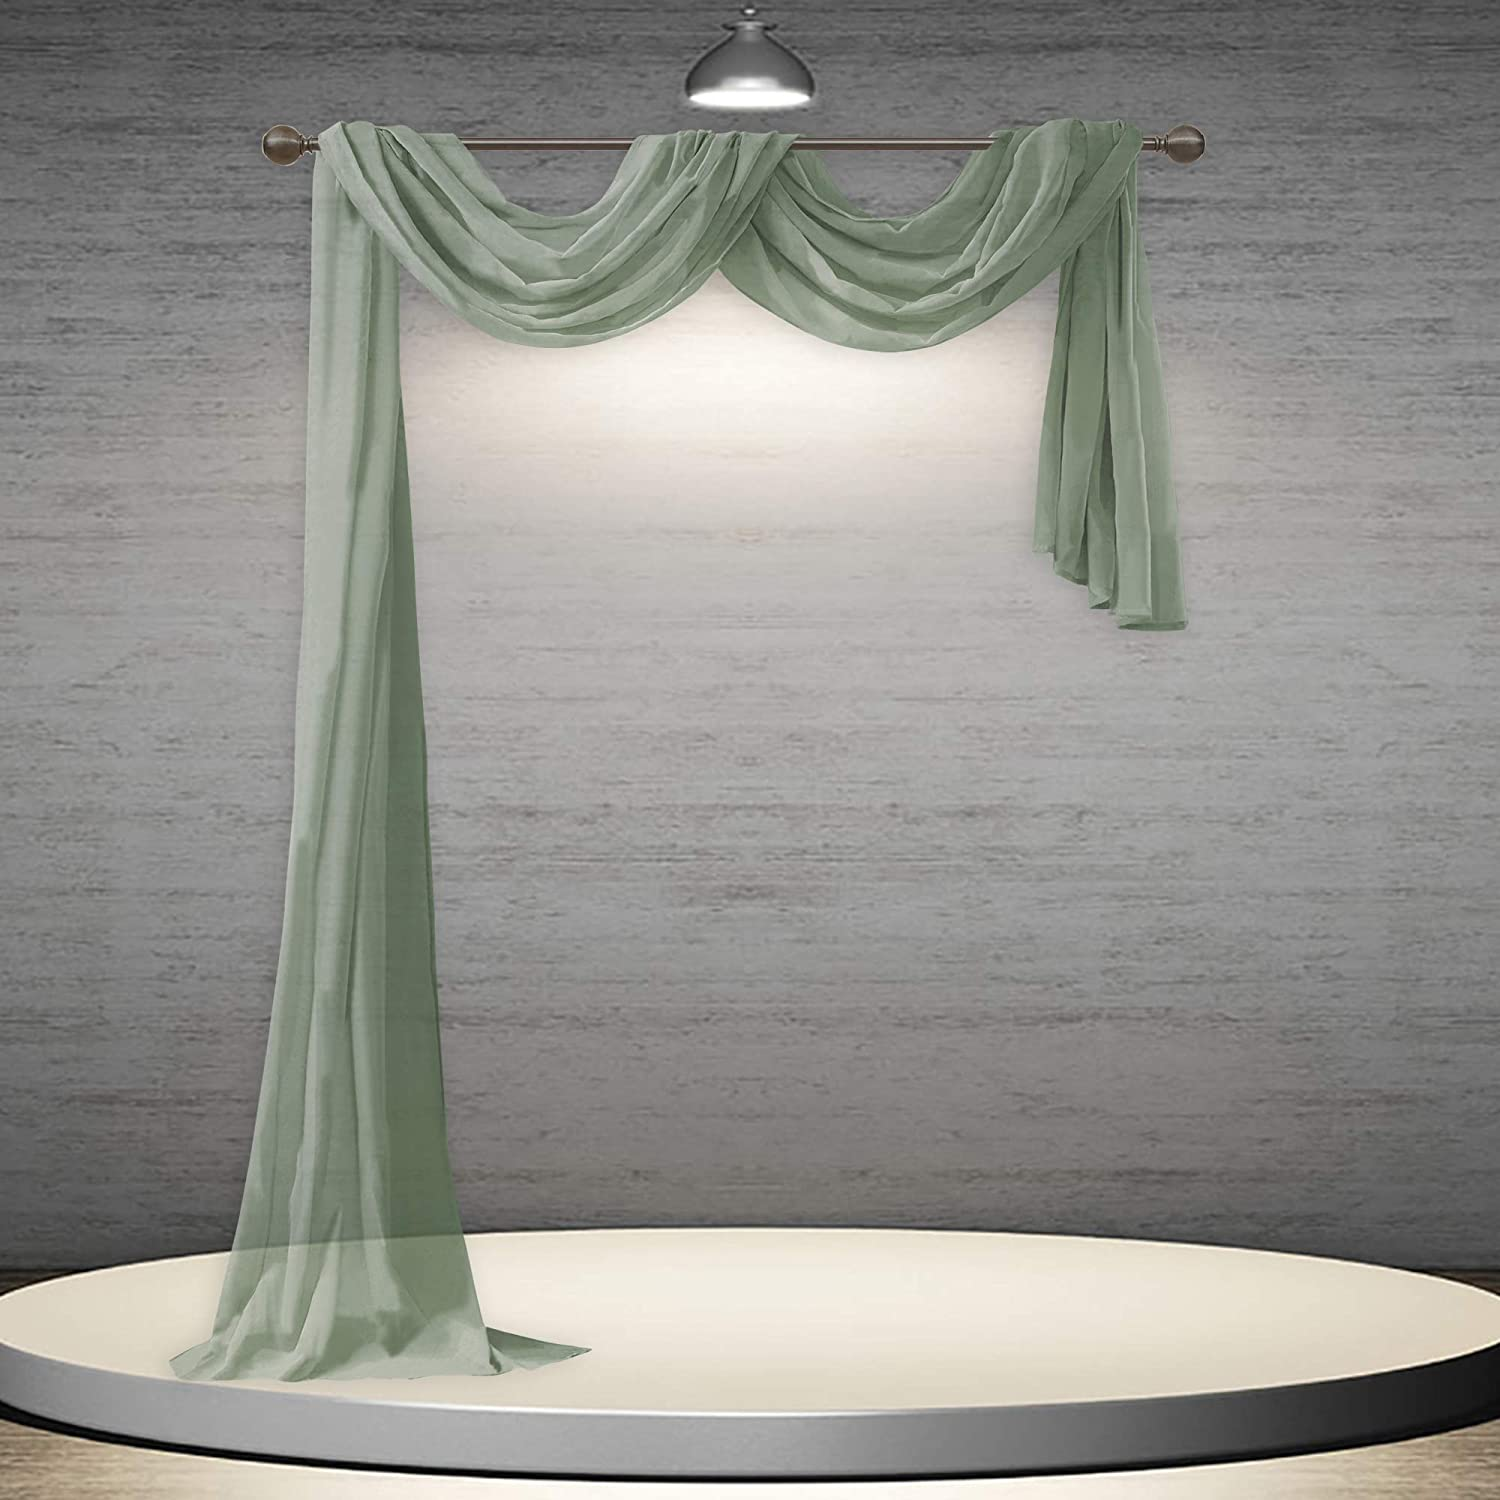 DONREN Sage Green Sheer Window Scarf Semi - Soft Valance Free Shipping Cheap Bargain Gift Sale Special Price Luxury